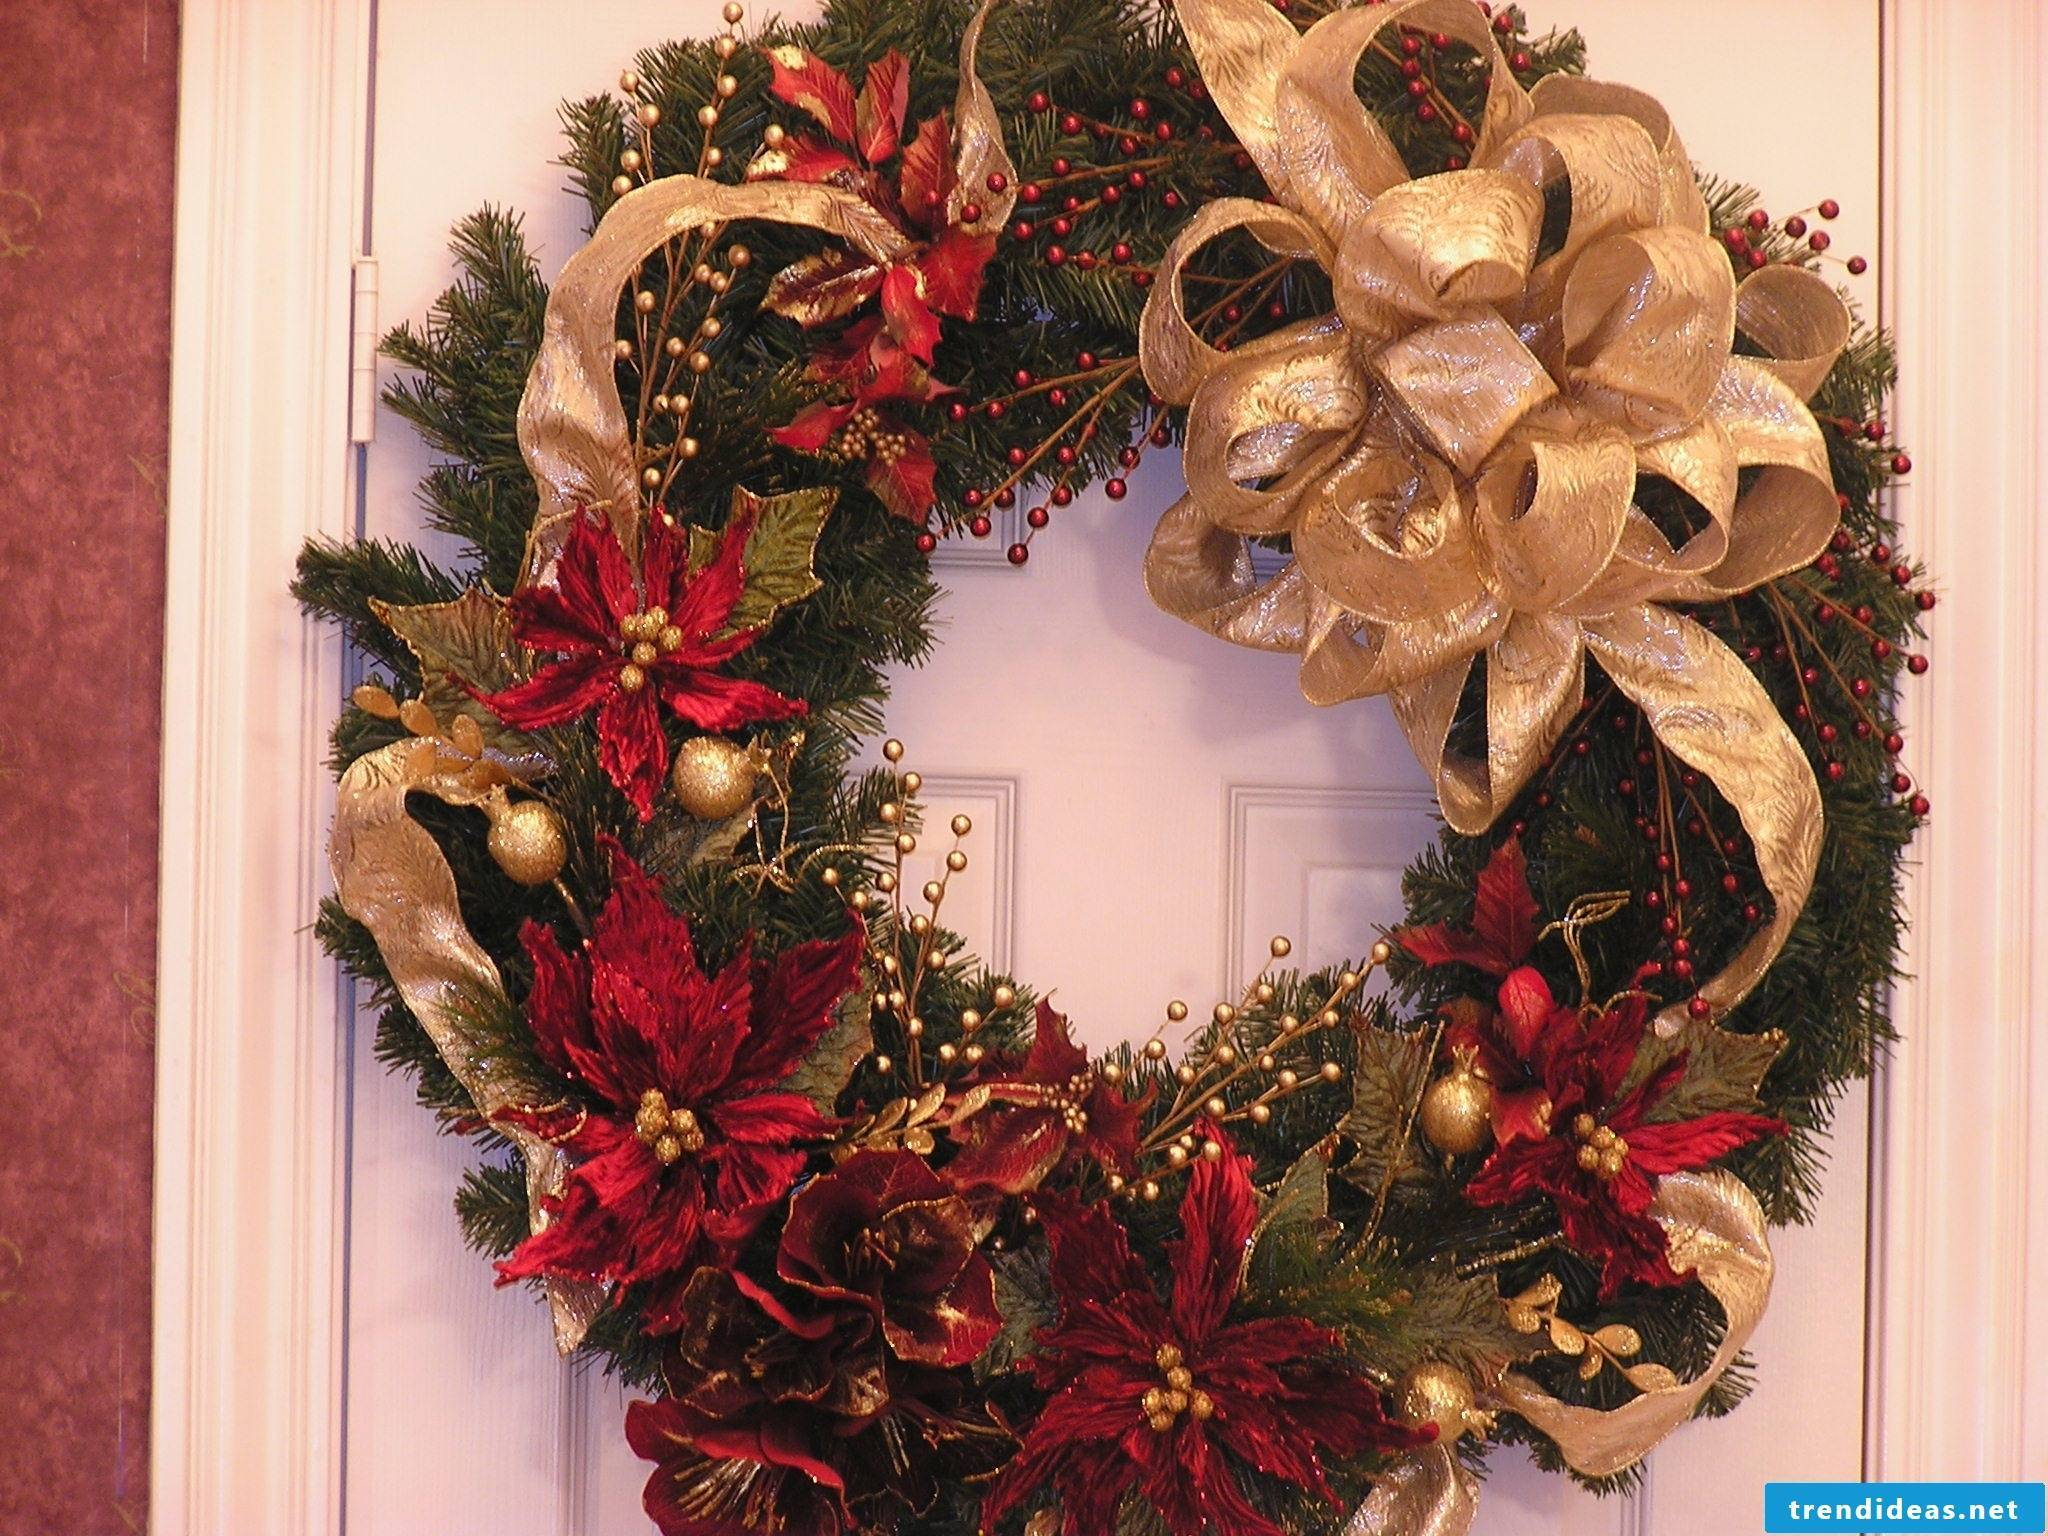 pretty door wreath Christmas with poinsettias and golden bows